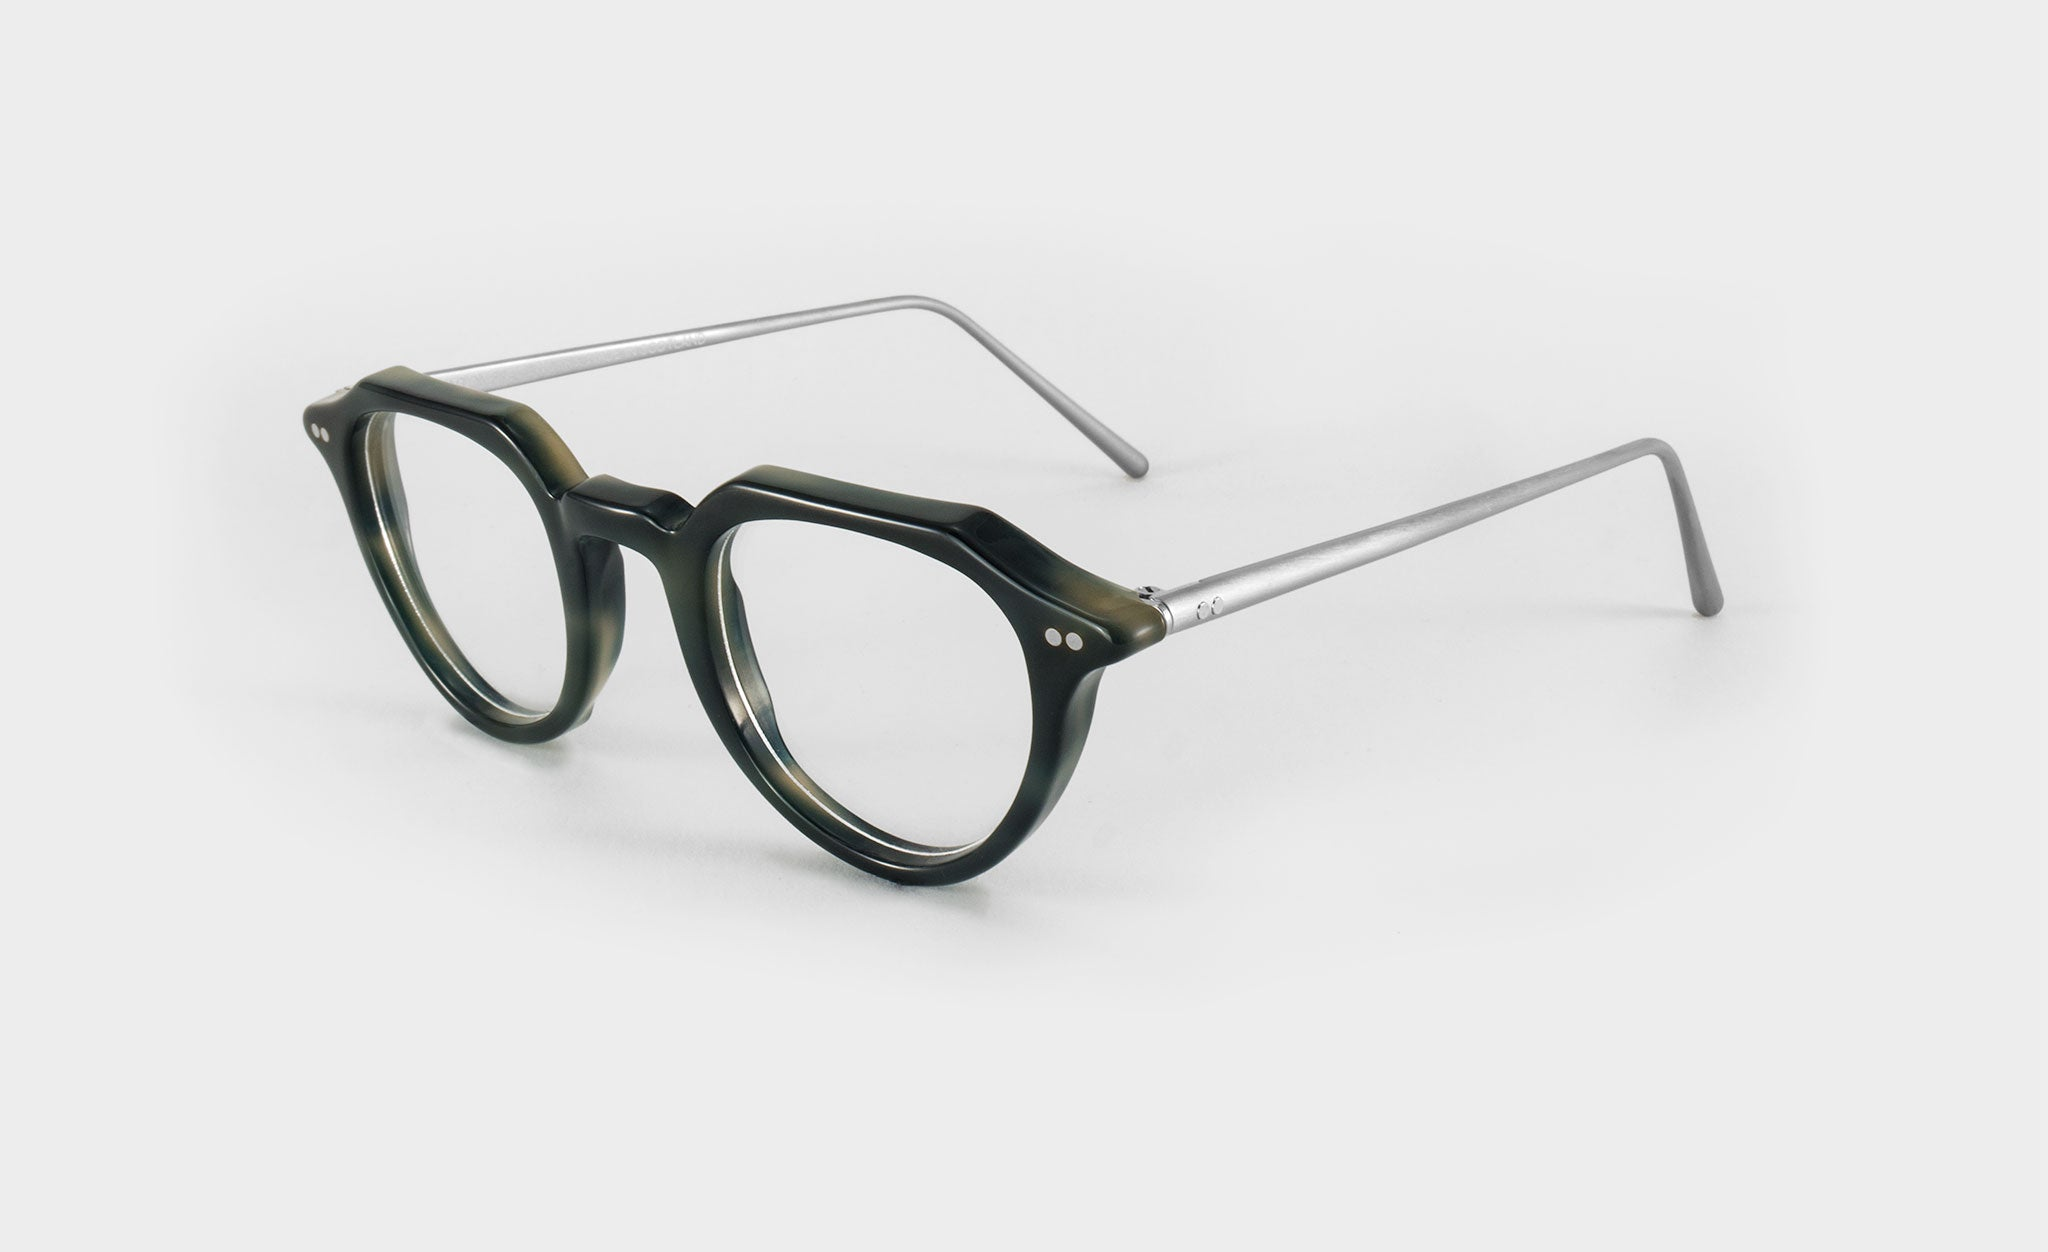 mens-glasses-g-loc-side-view